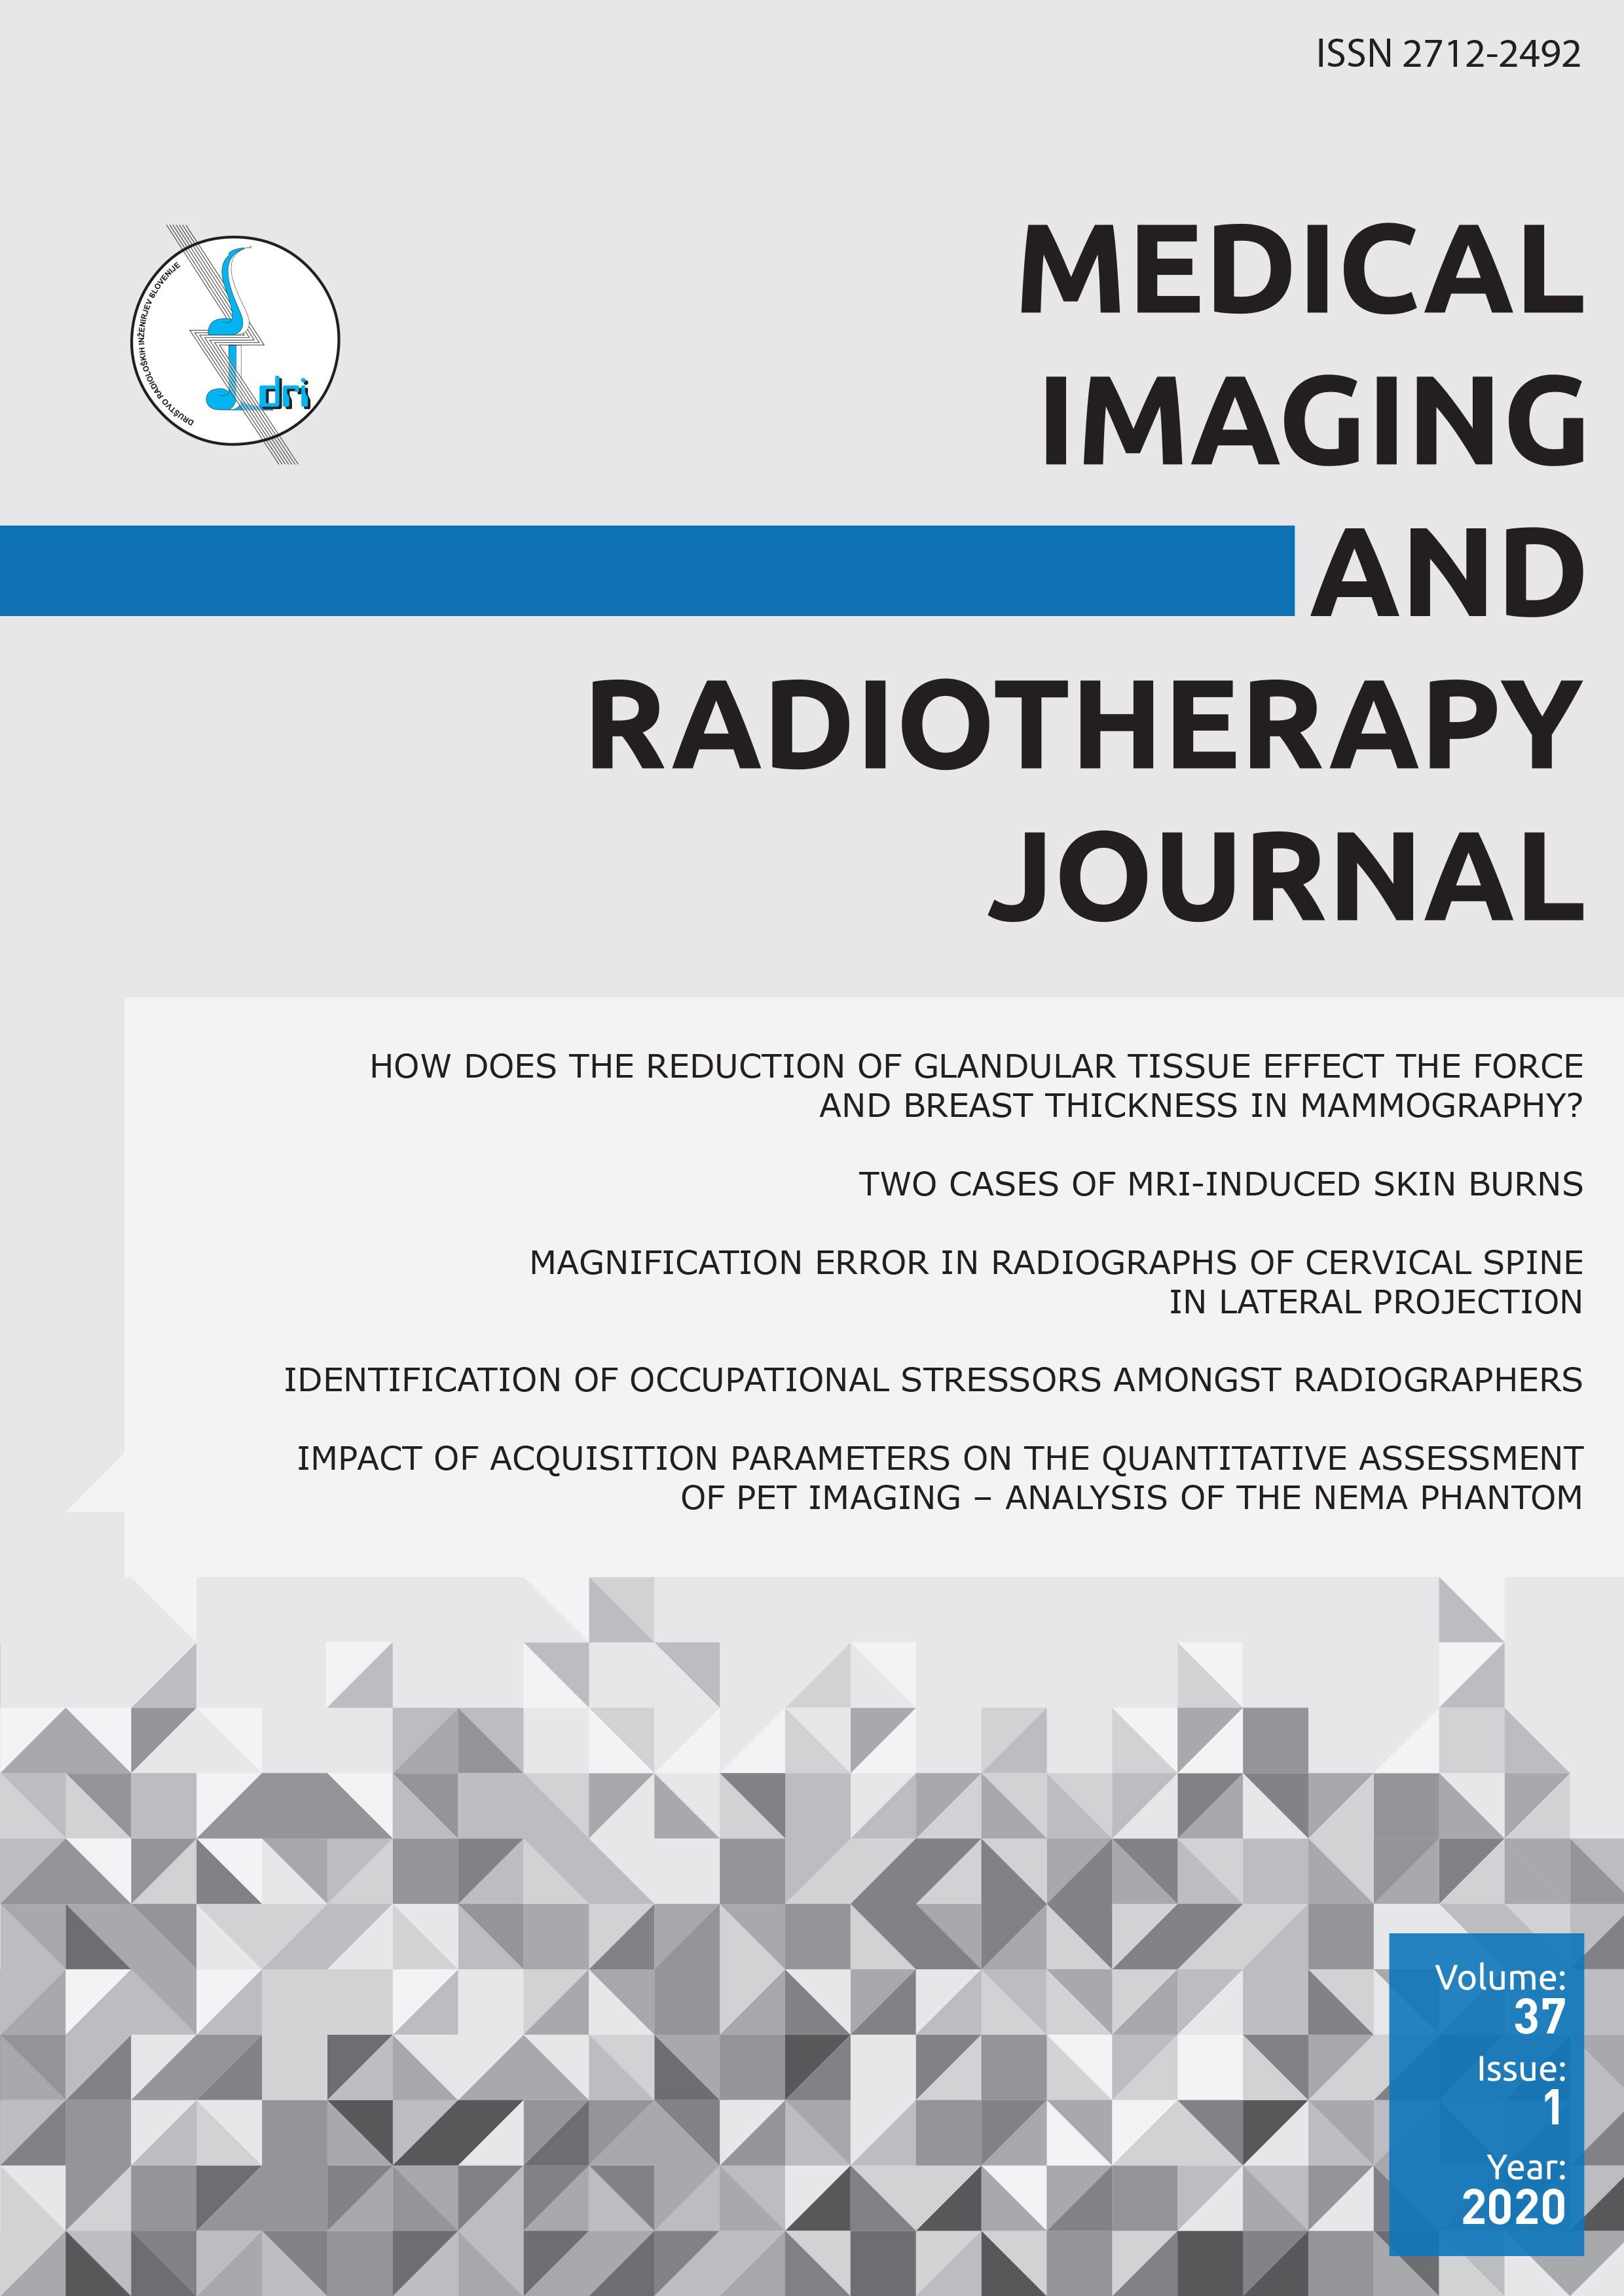 Medical Imaging and Radiotherapy Journal = MIRTJ